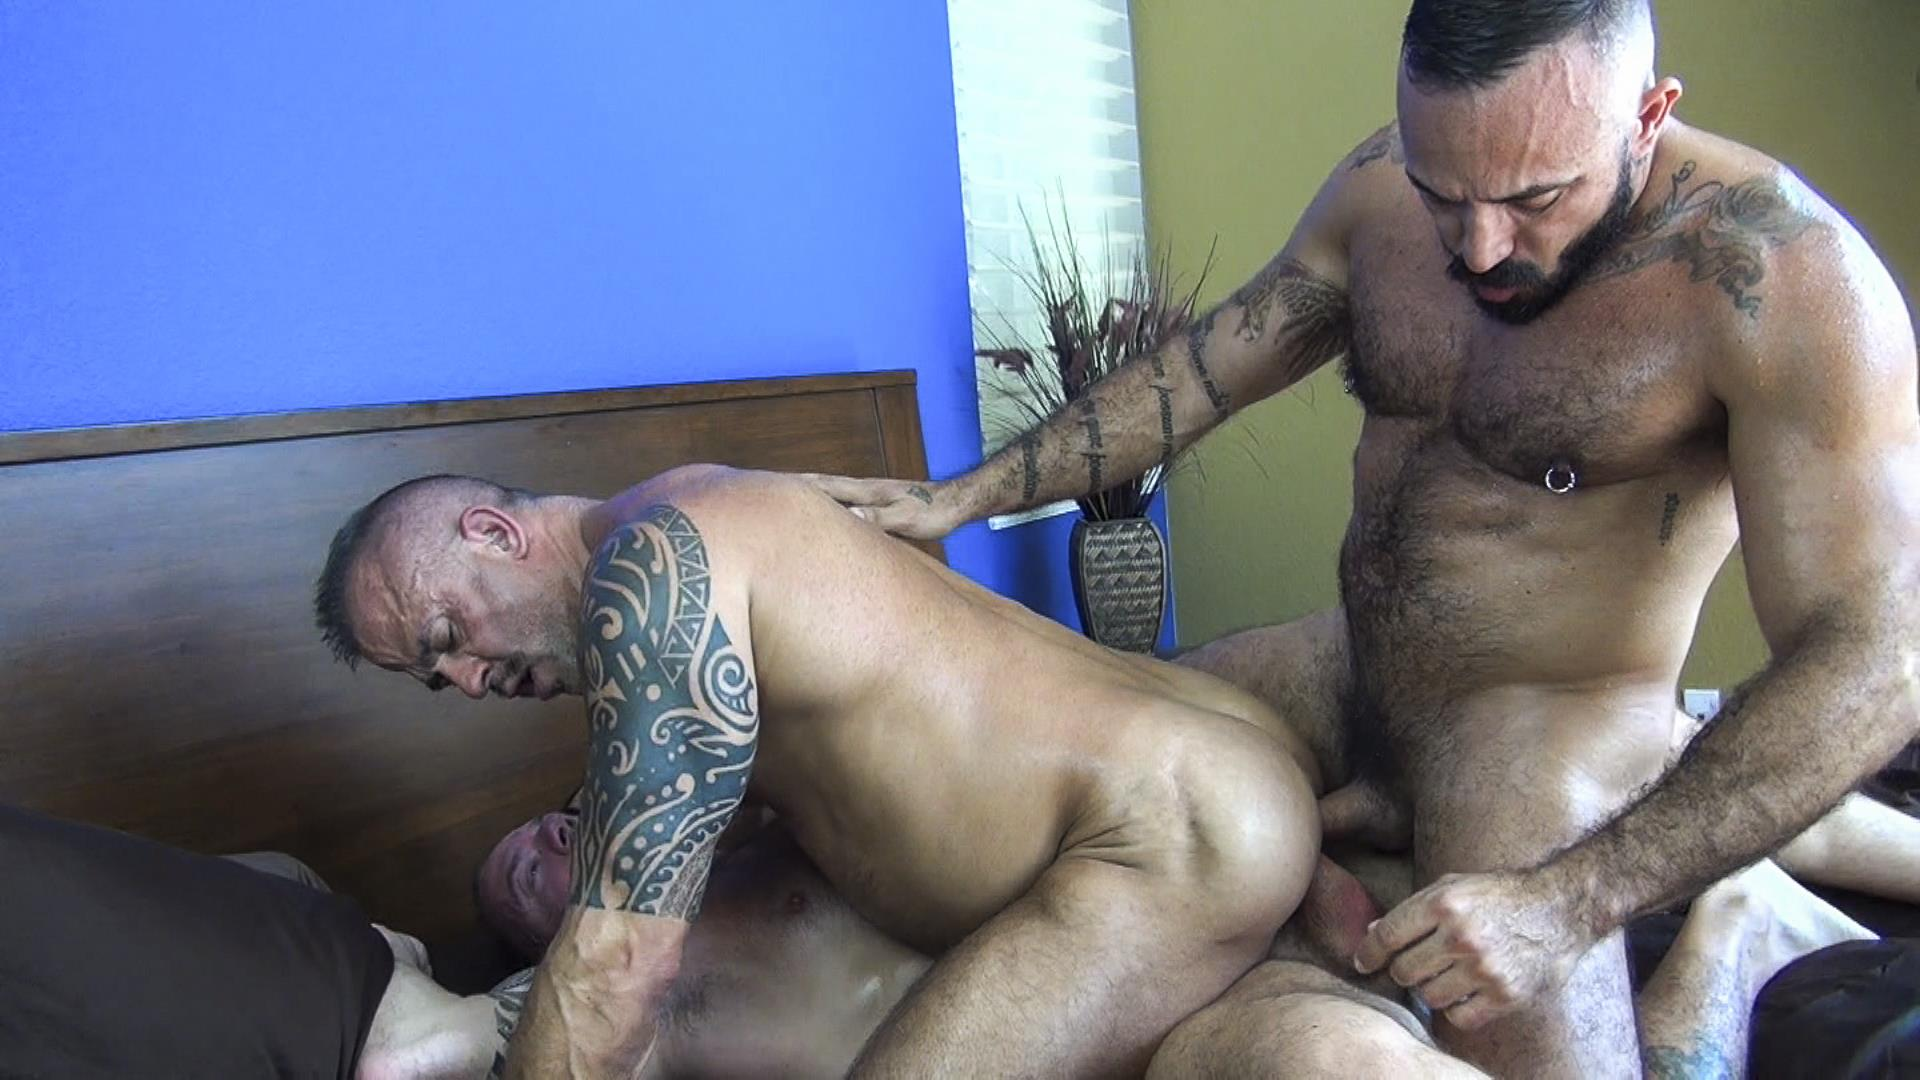 Raw Fuck Club Alessio Romero and Jon Galt and Vic Rocco Hairy Muscle Daddy Bareback Amateur Gay Porn 1 Hairy Muscle Daddy Threeway Double Bareback Penetration